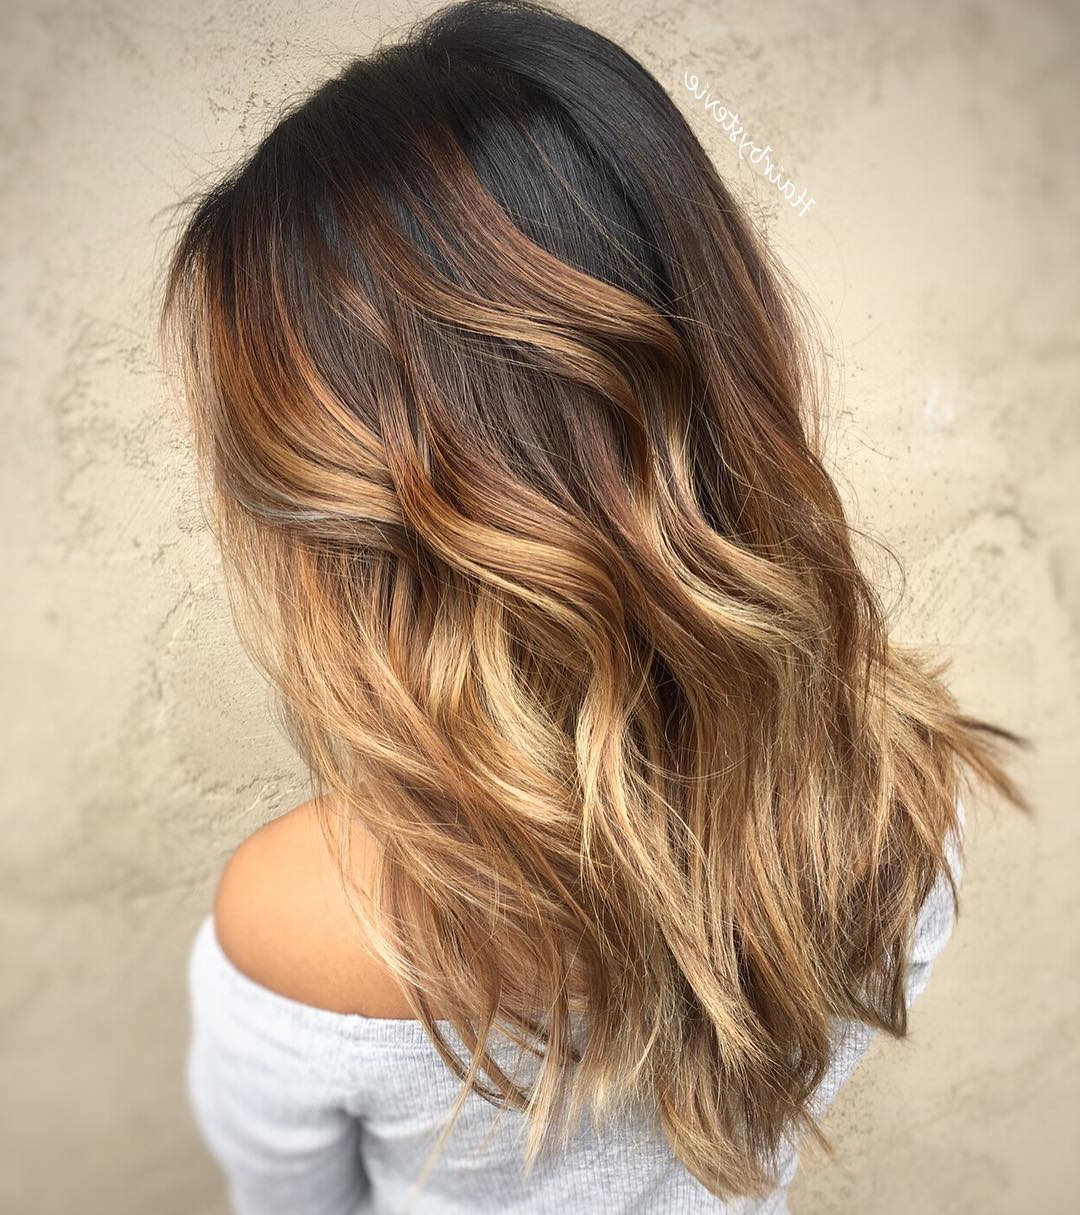 20 Sweet Caramel Balayage Hairstyles For Brunettes And Beyond Regarding Curly Dark Brown Bob Hairstyles With Partial Balayage (View 5 of 20)